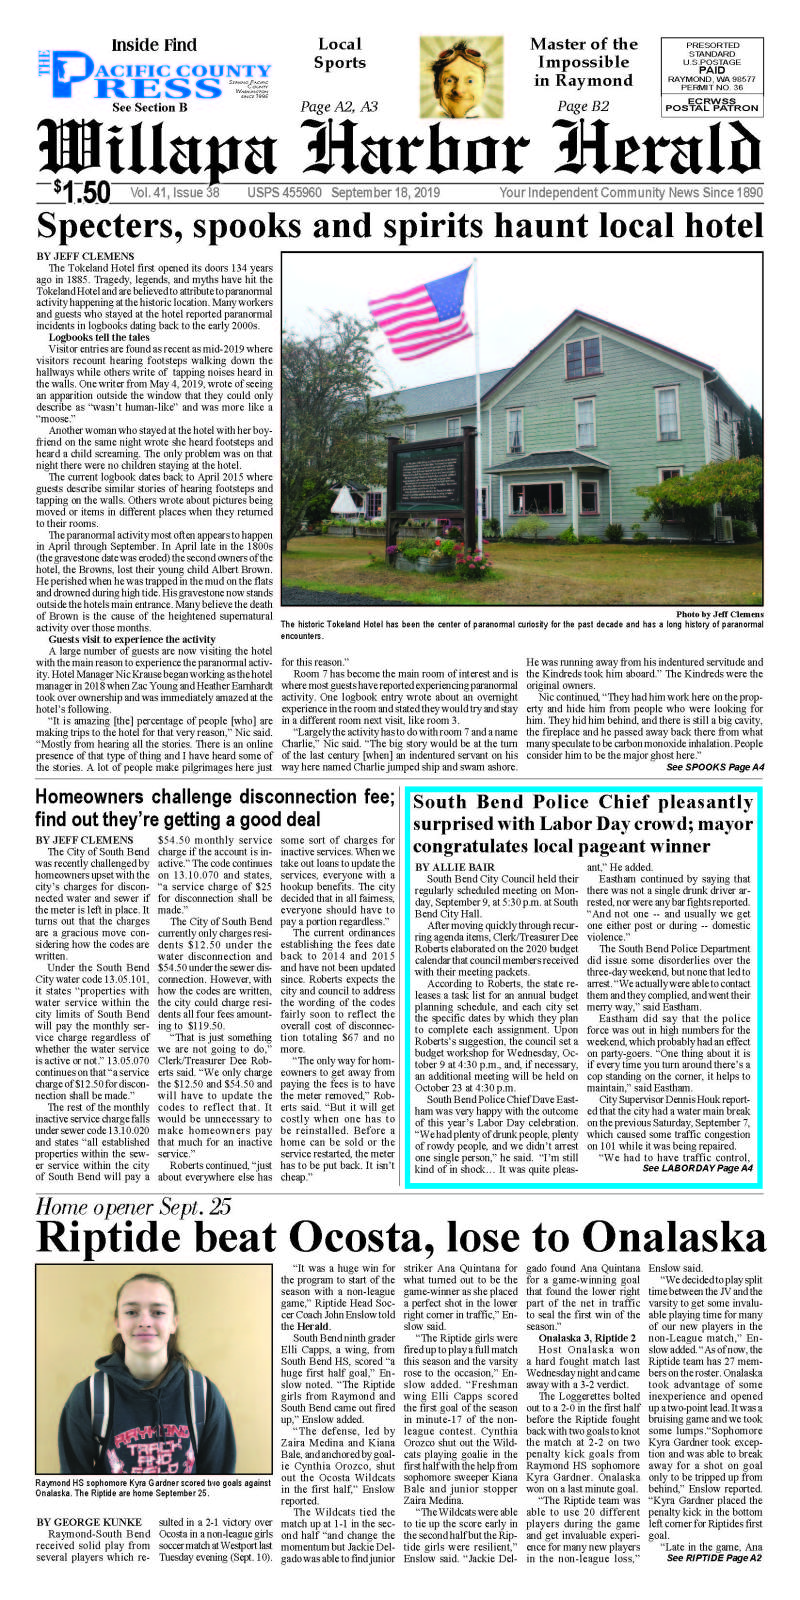 September 18, 2019 Willapa Harbor Herald and Pacific County Press